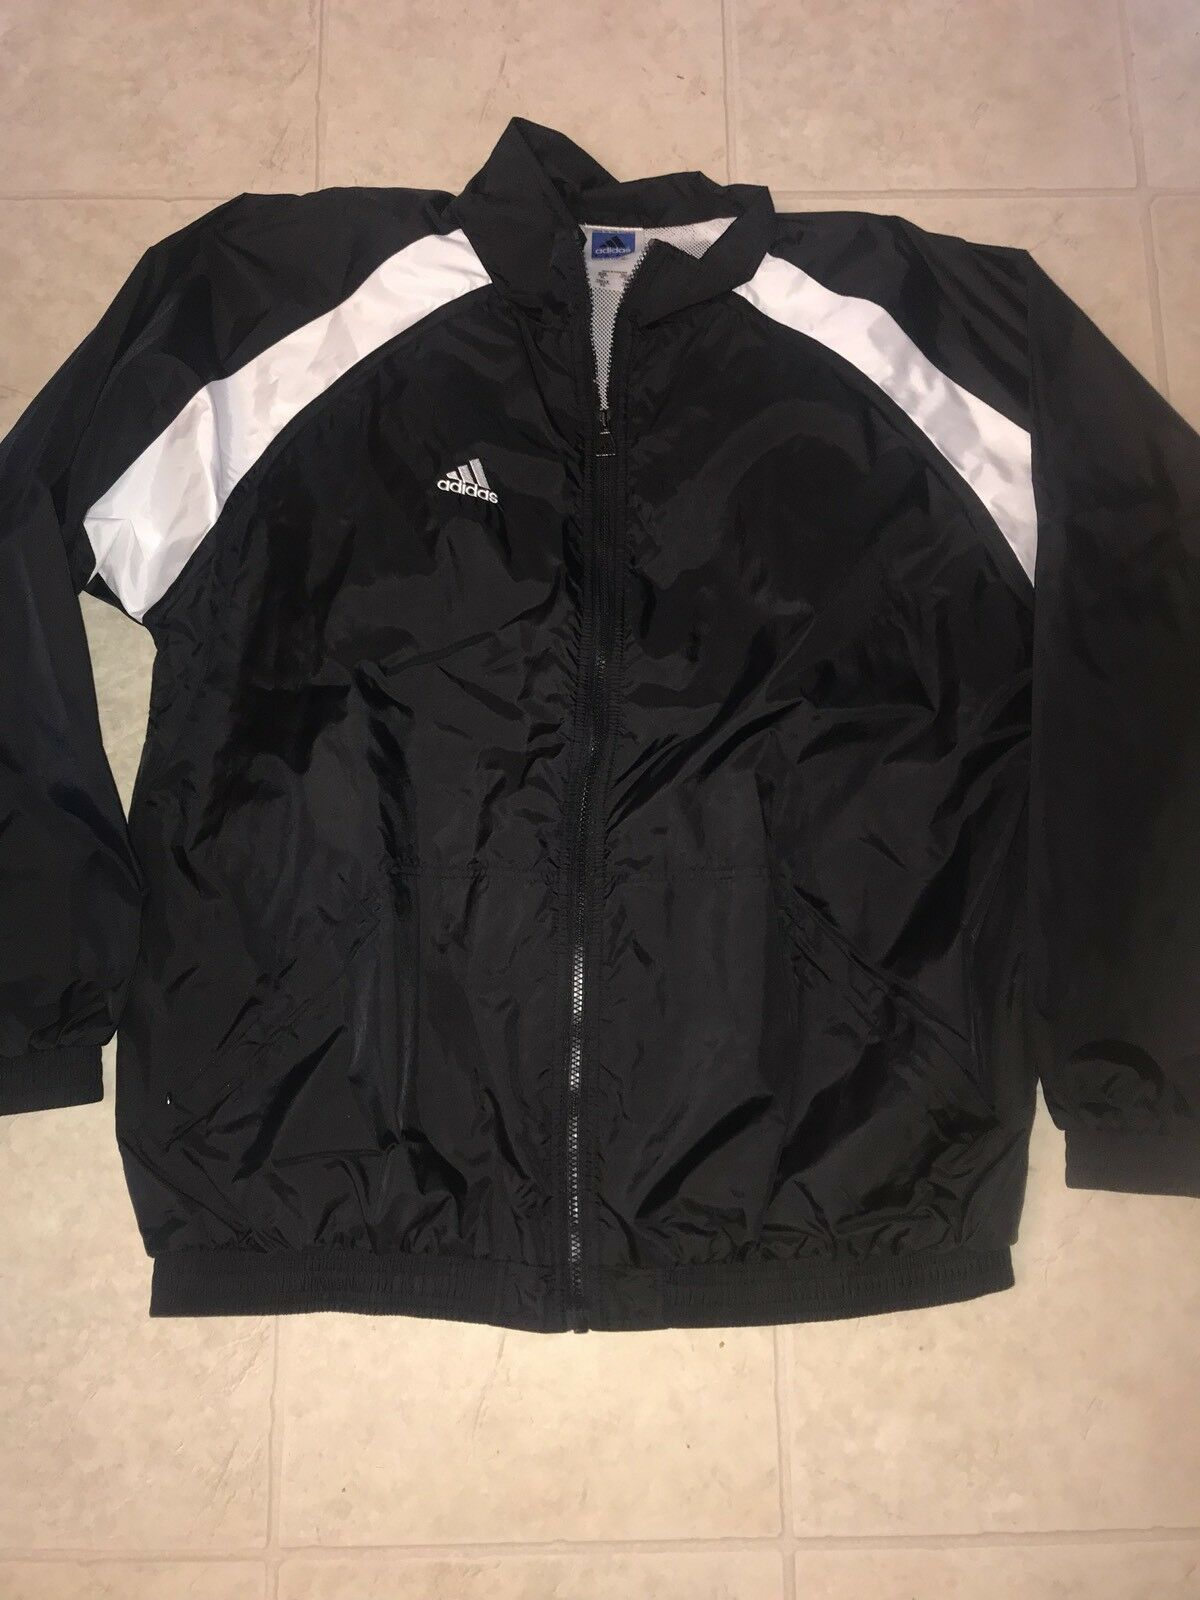 Primary image for Adidas Team ~ Men's Black White 3-Striped Track Mesh Lined Jacket EUC ~ XL